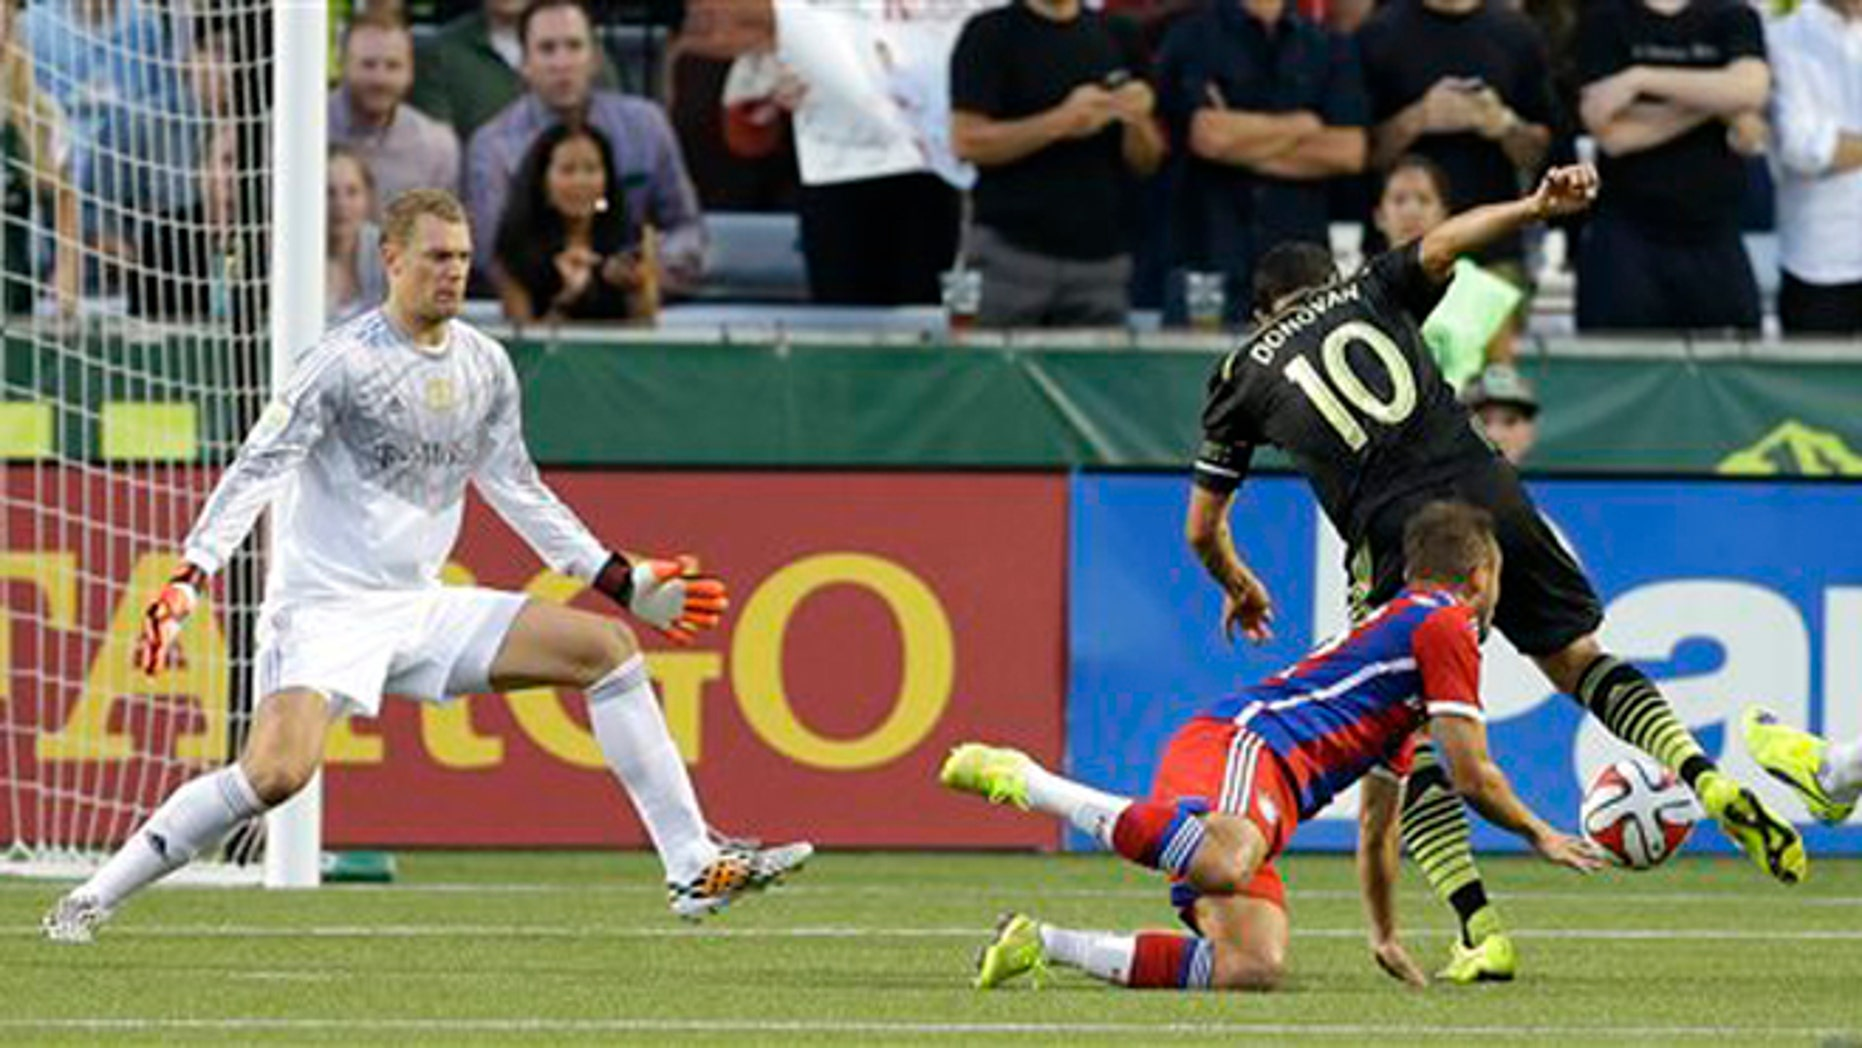 Los Angeles Galaxy forward Landon Donovan (10) scores the go-ahead goal on Bayern Munich goalkeeper Manuel Neuer, left, and around the defense of Rafinha, second from left, in the second half of the MLS All-Star soccer game, Wednesday, Aug. 6, 2014, in Portland, Ore. The MLS All-Stars won 2-1. (AP Photo/Ted S. Warren)